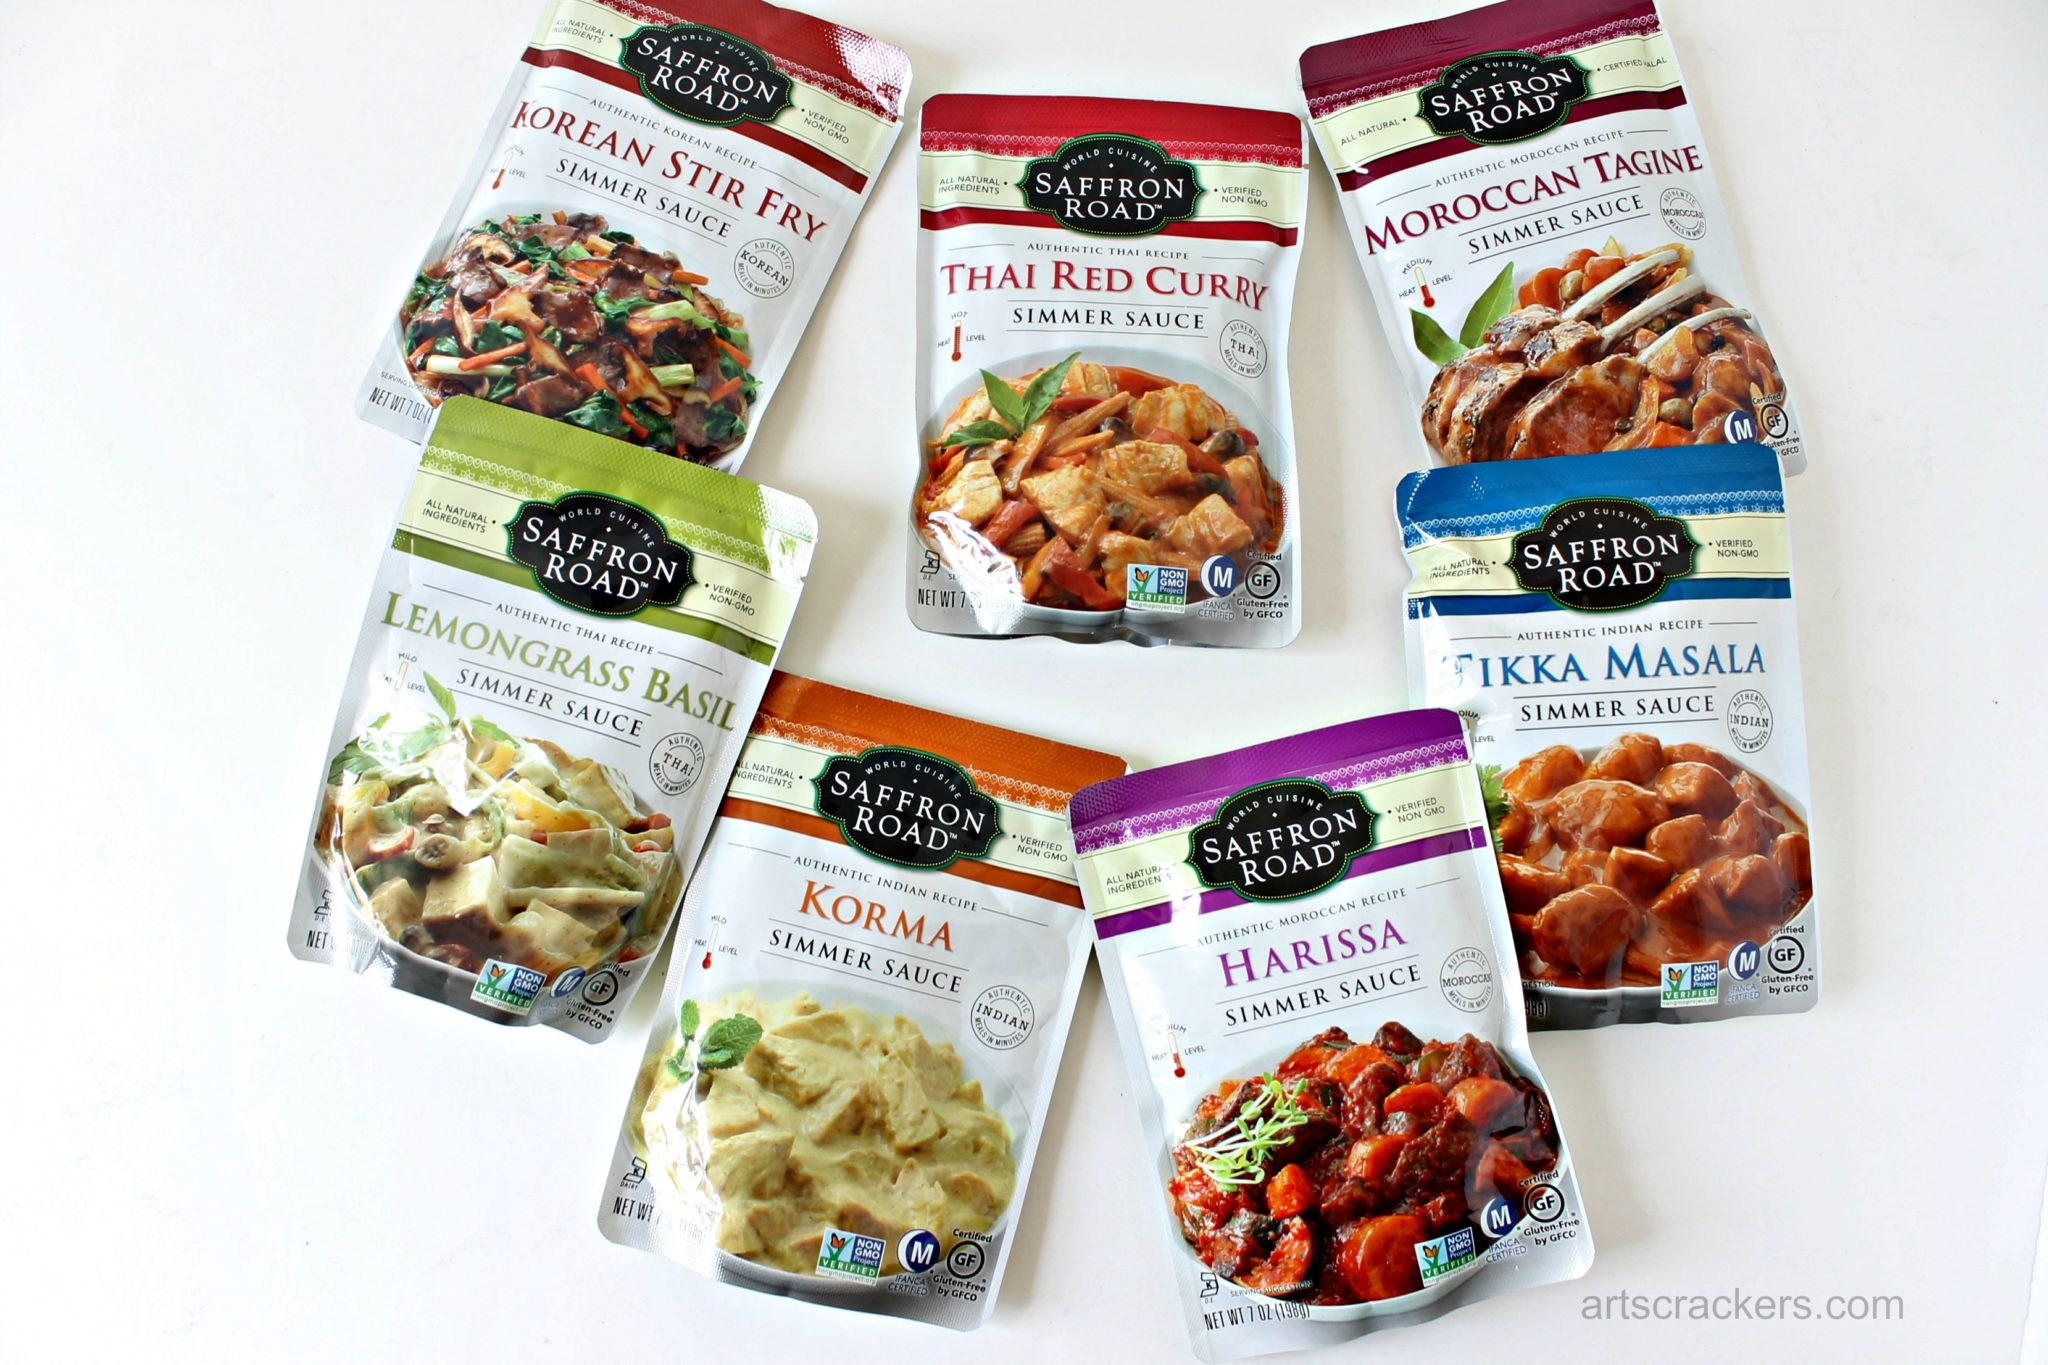 Saffron Road Food Sauces